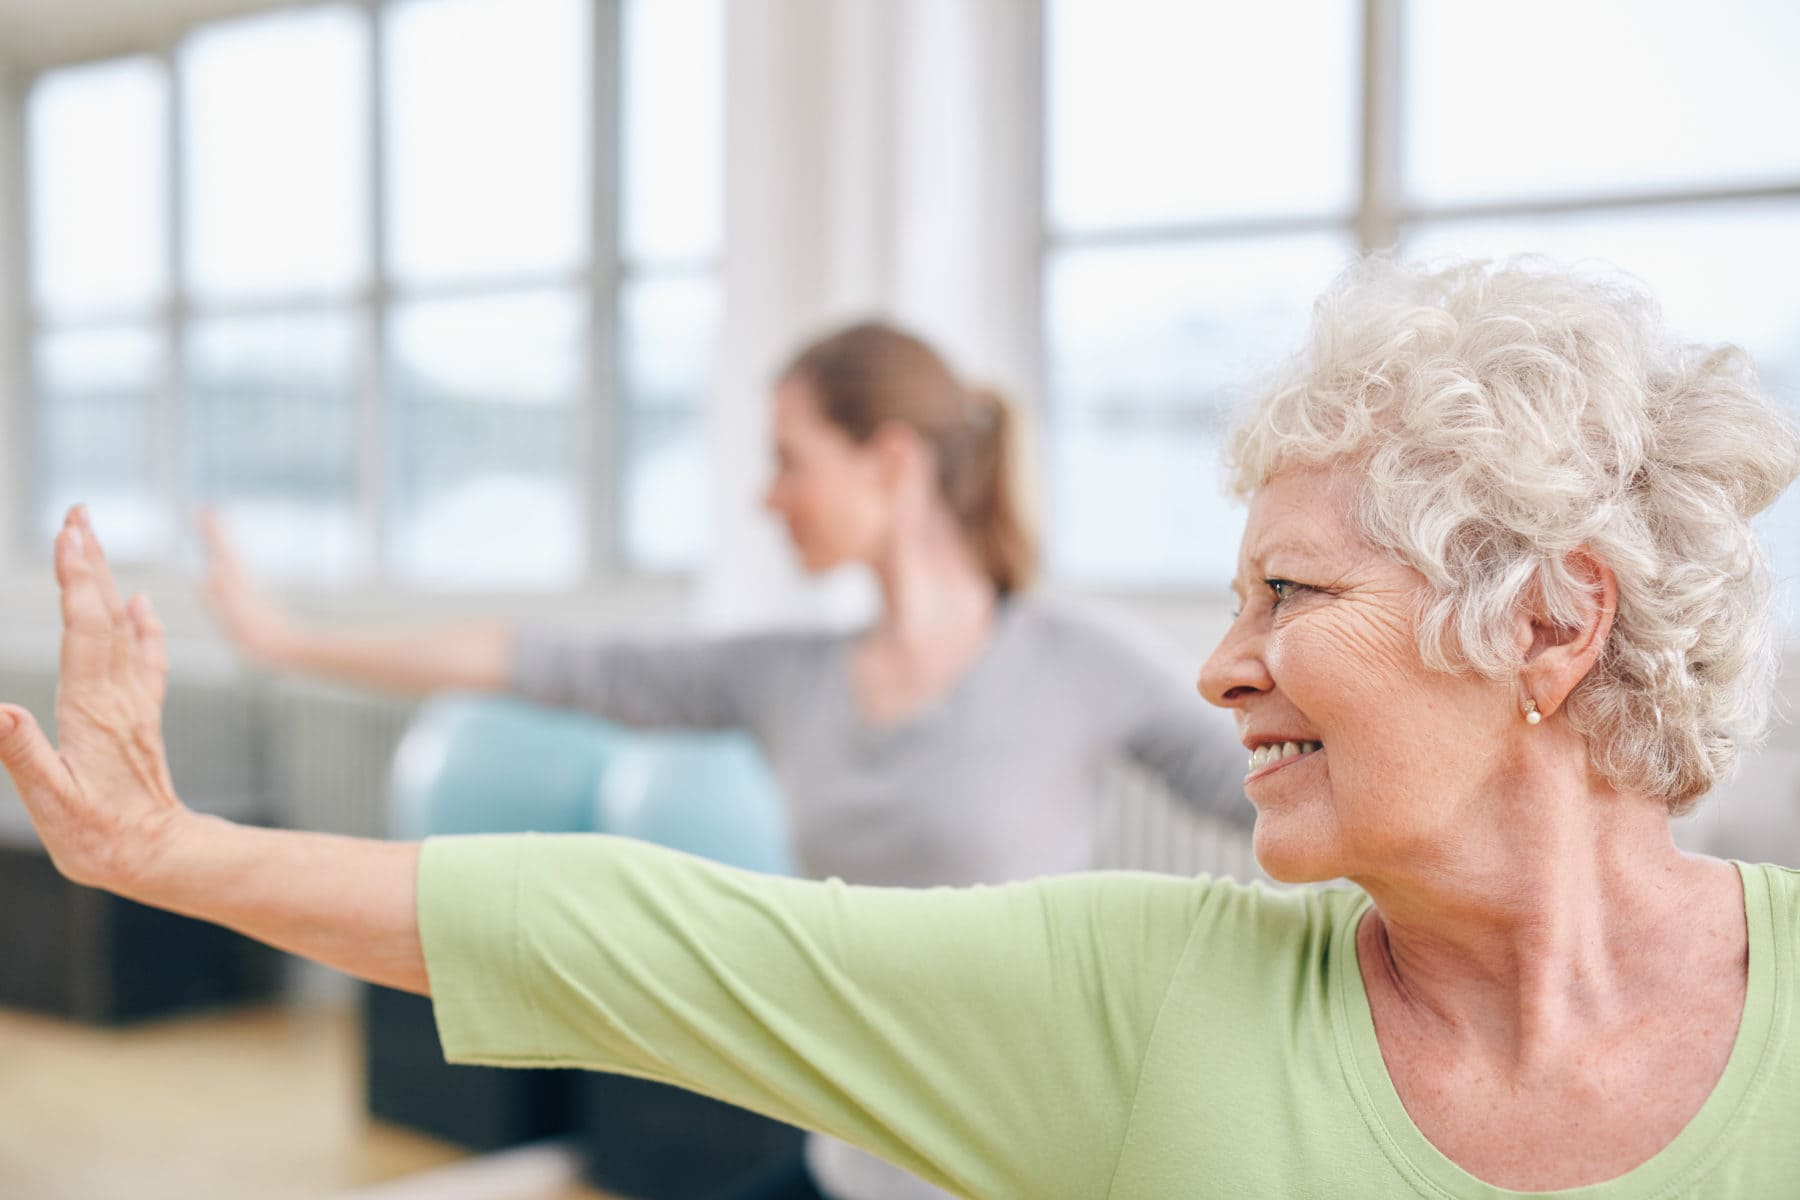 Close-up shot of elderly woman doing stretching workout at yoga class. Women practicing yoga at health club.